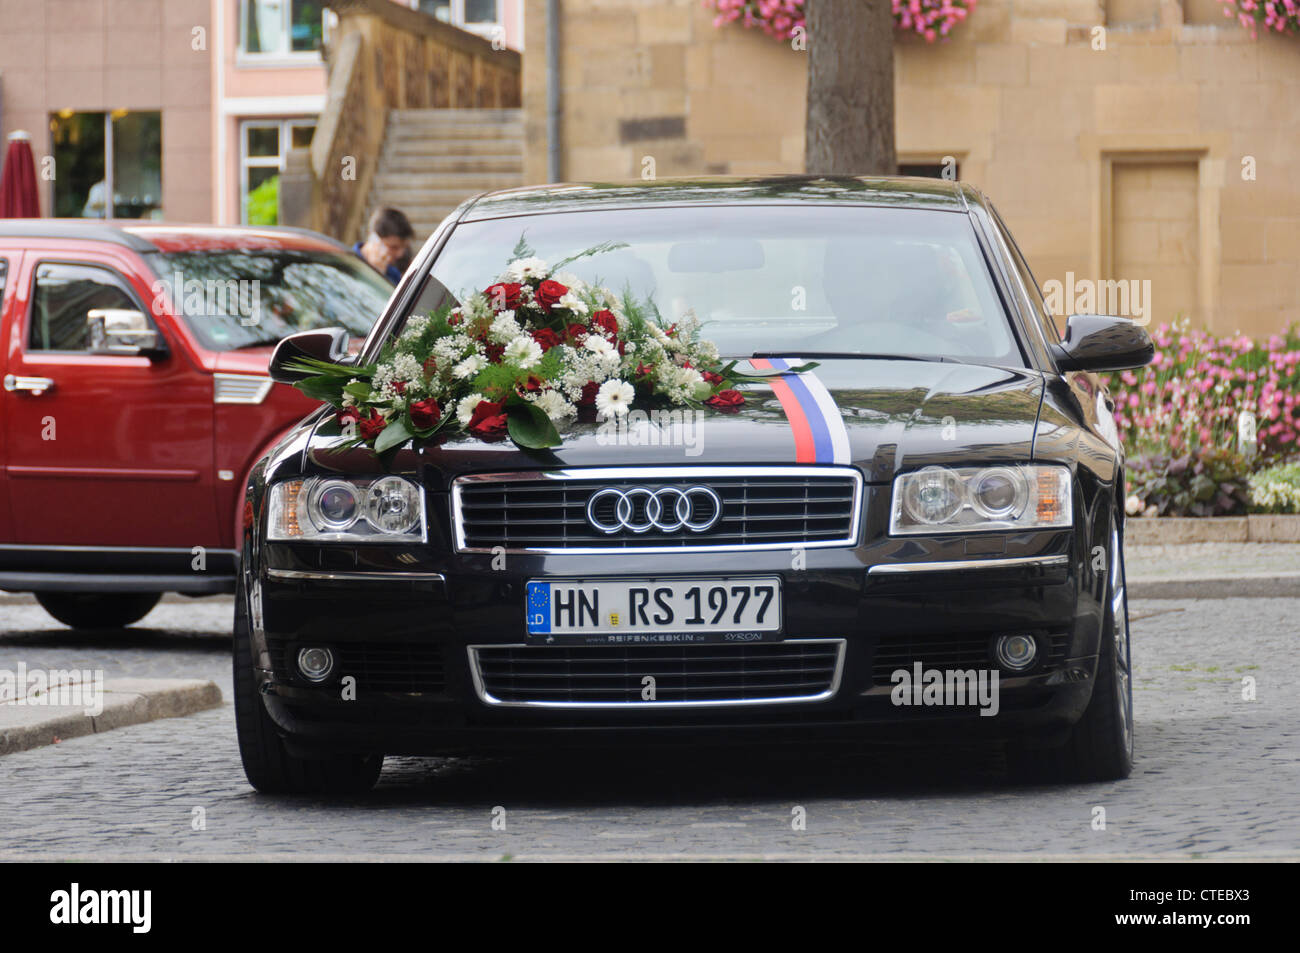 Black Audi A8 Station Wagon Wedding Car Luxury Limousine Vehicle ...